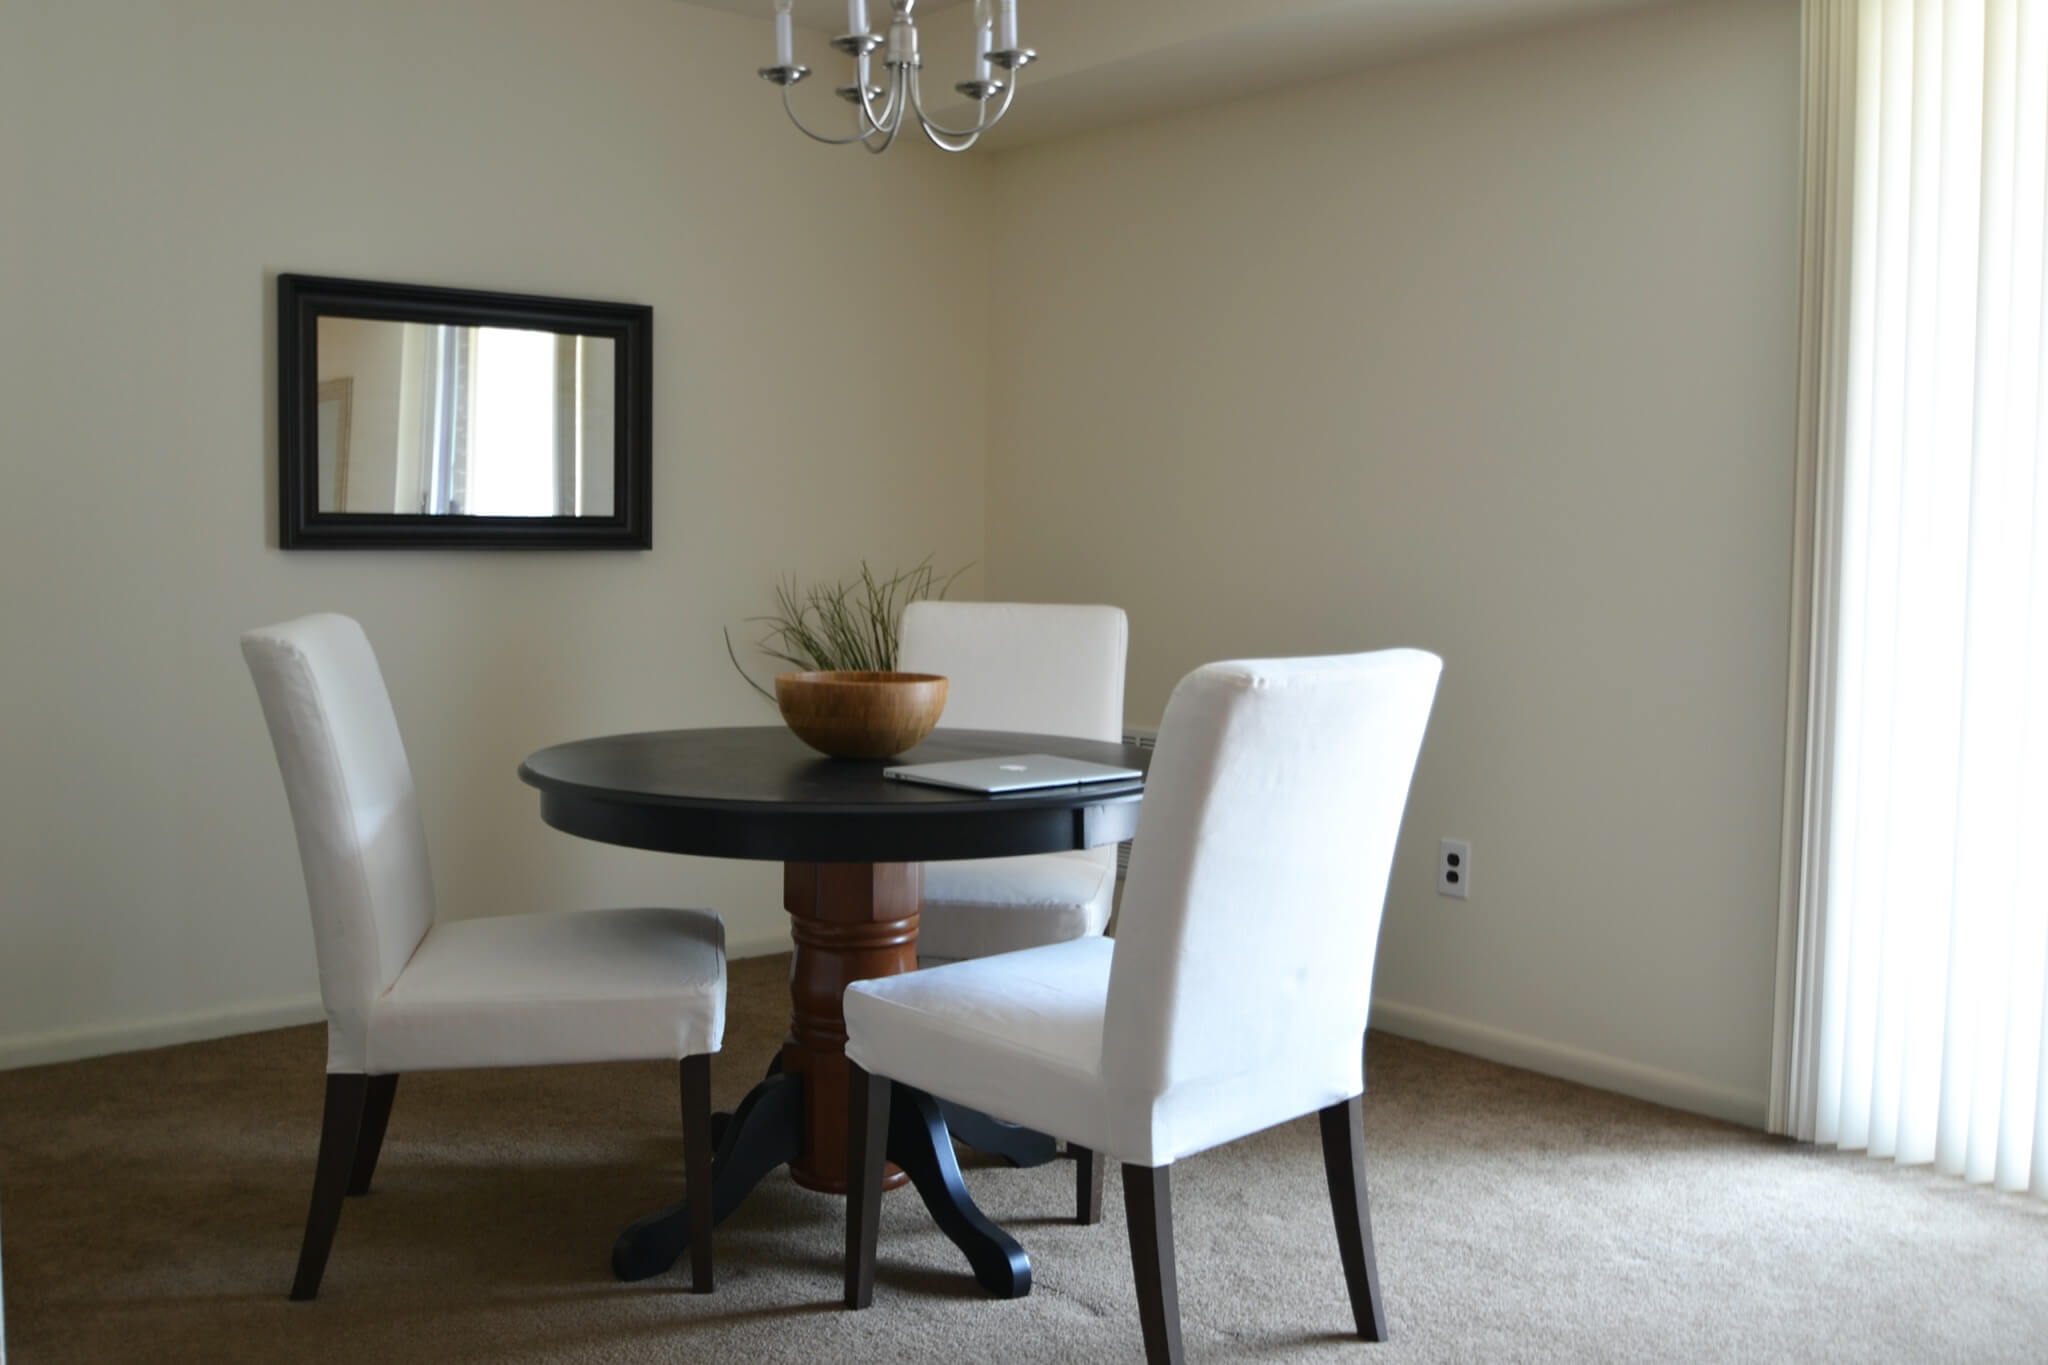 1 Bedroom Apartment Seating Area, Table